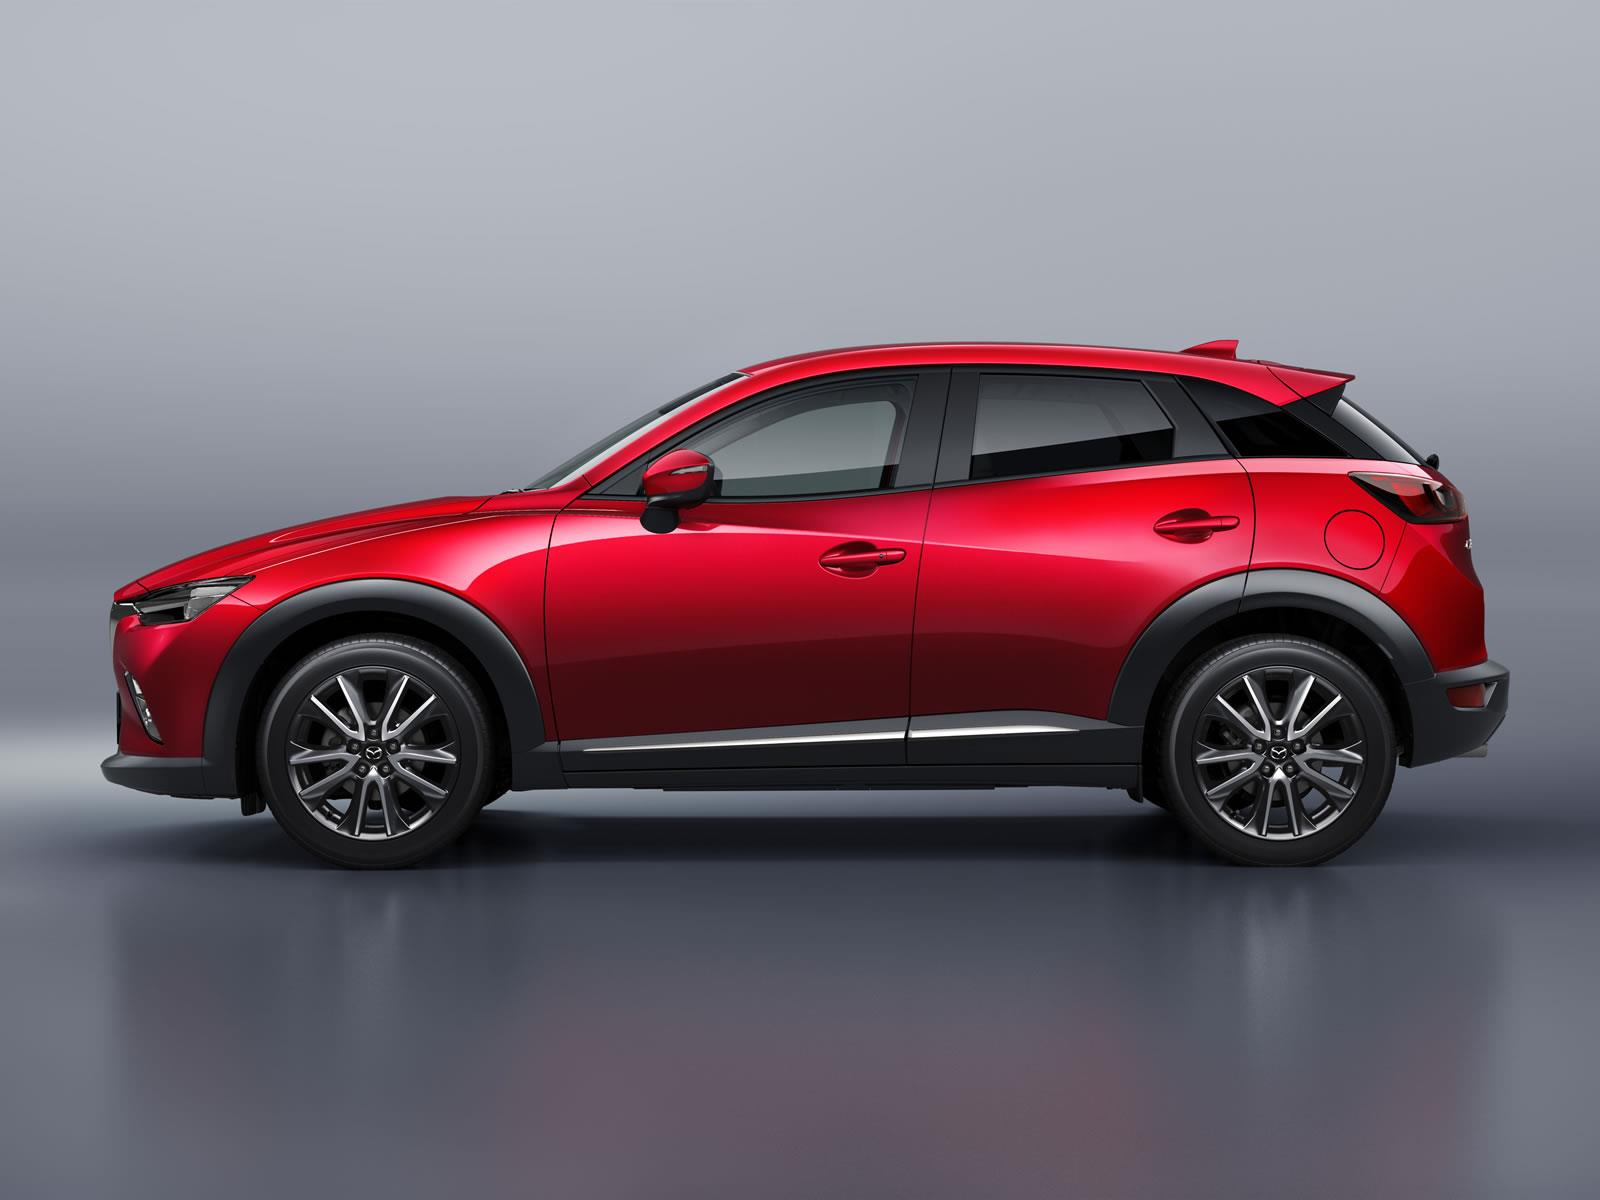 mazda cx 3 2016 tiene un precio inicial de 19 960 d lares. Black Bedroom Furniture Sets. Home Design Ideas